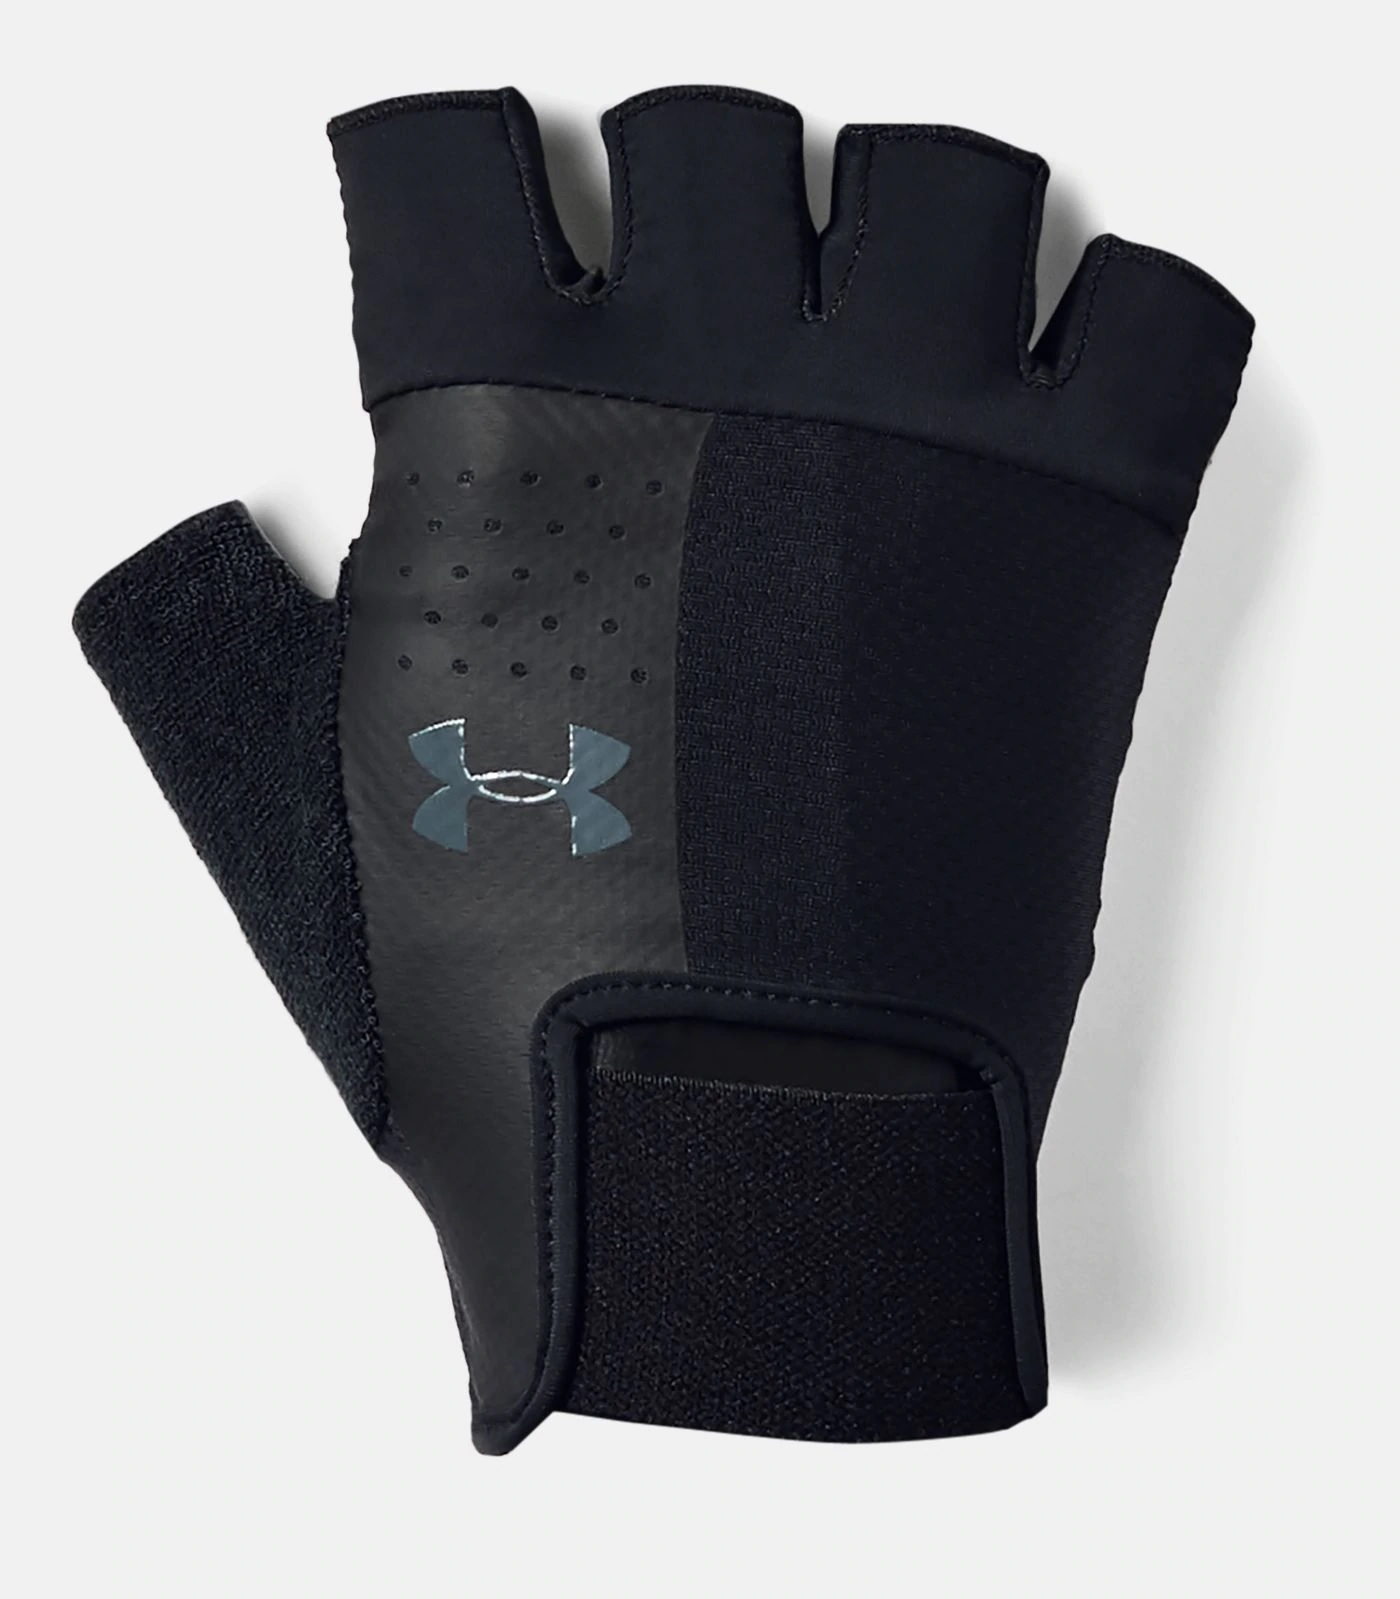 Under Armour Training Gloves pán.